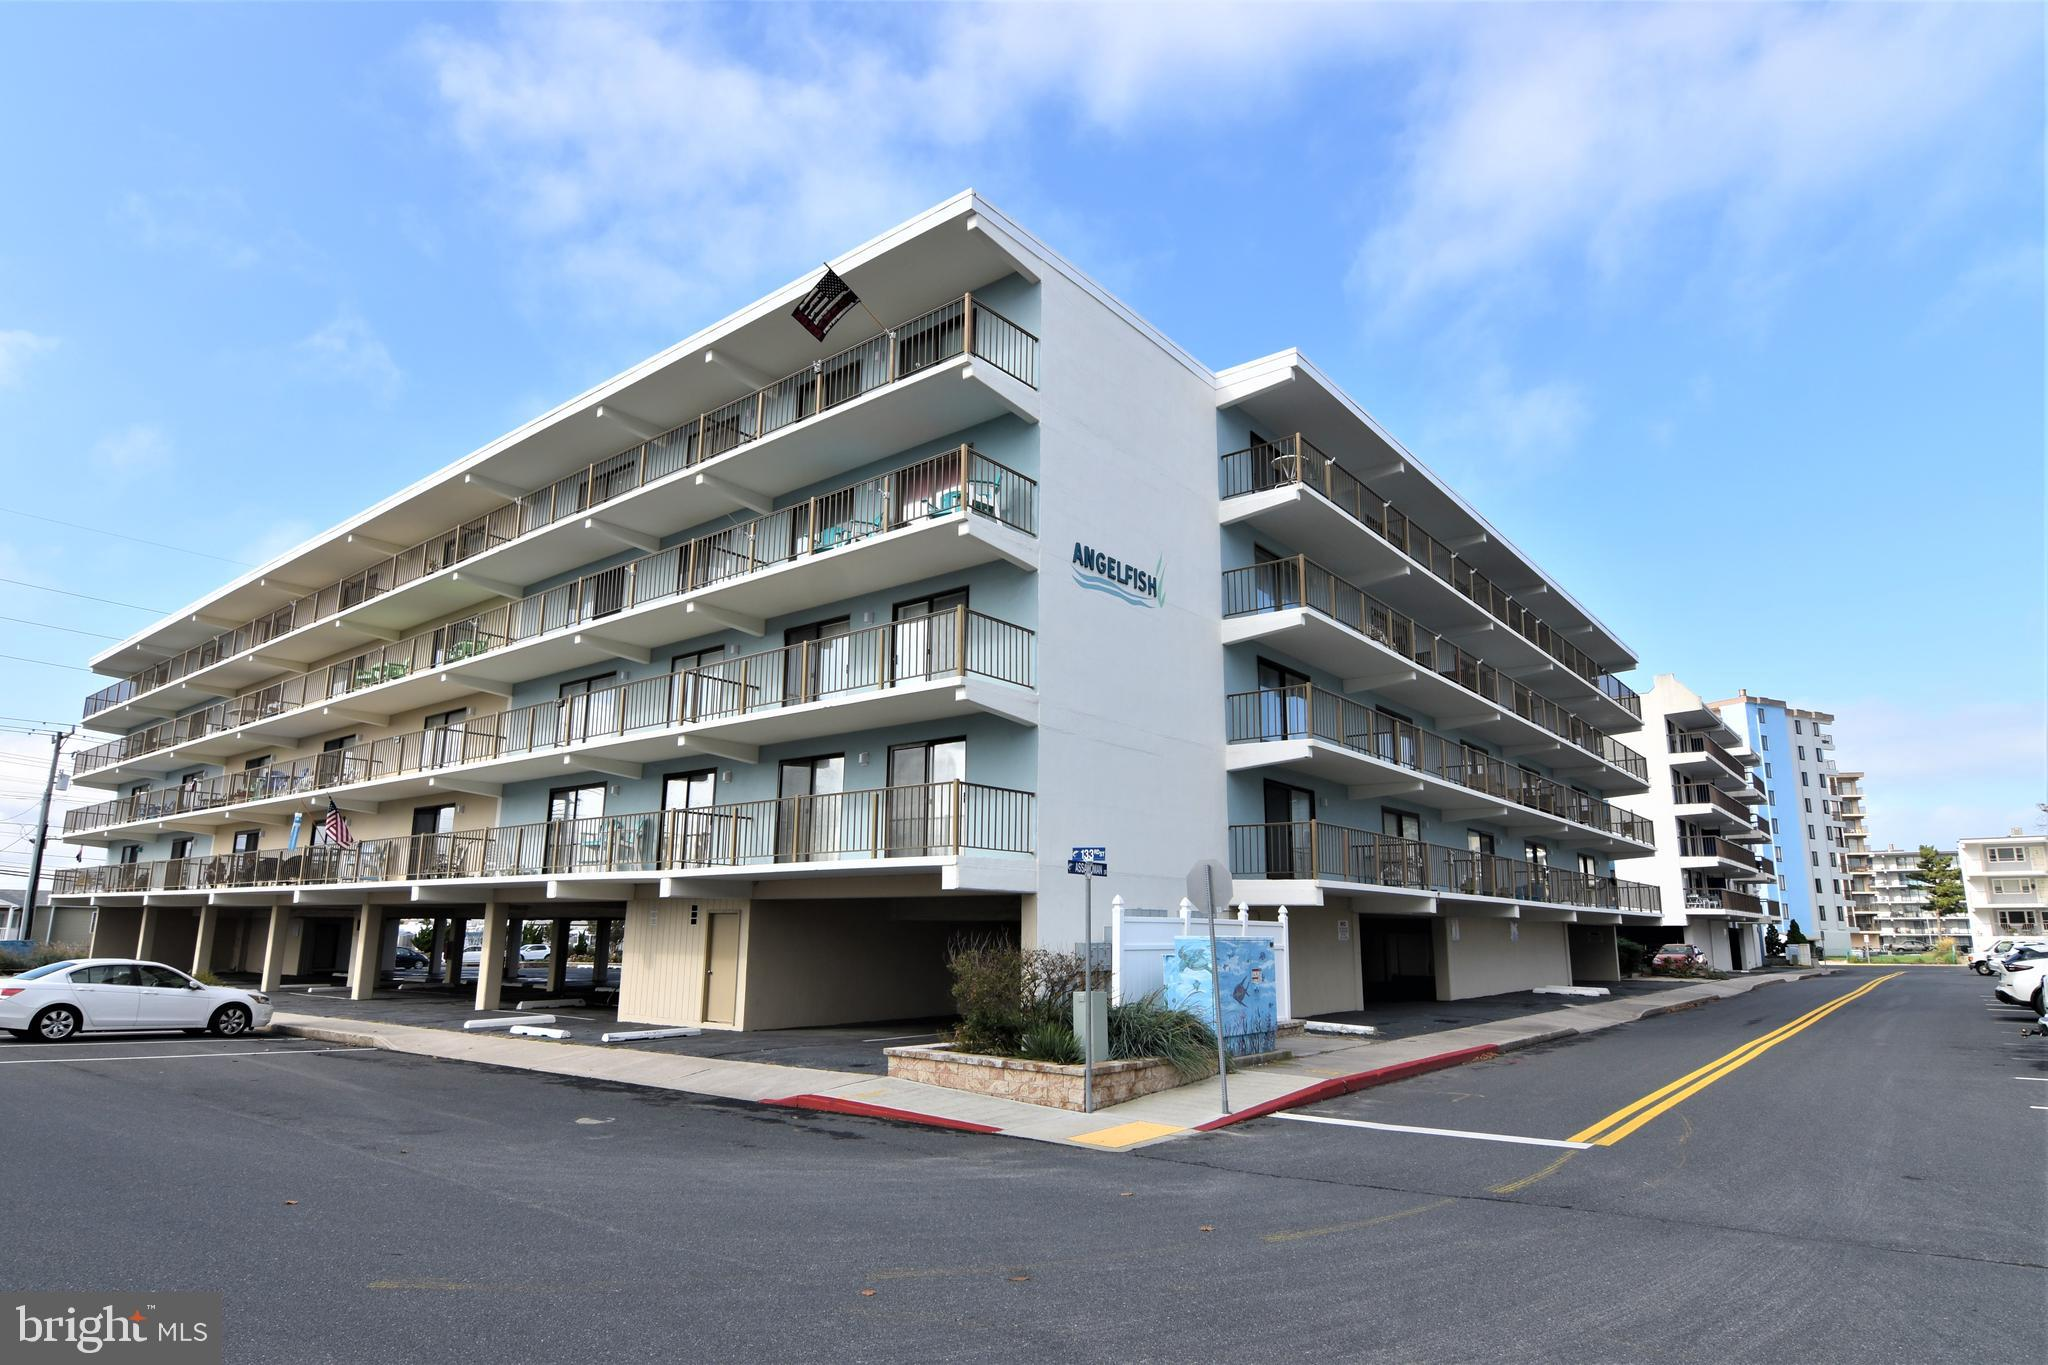 WHAT A GREAT LOCATION, 133RD ST, OCEAN BLOCK, 2 BR 2 BA, 401 ANGELFISH, GREAT OCEAN AND BAY VIEWS, T